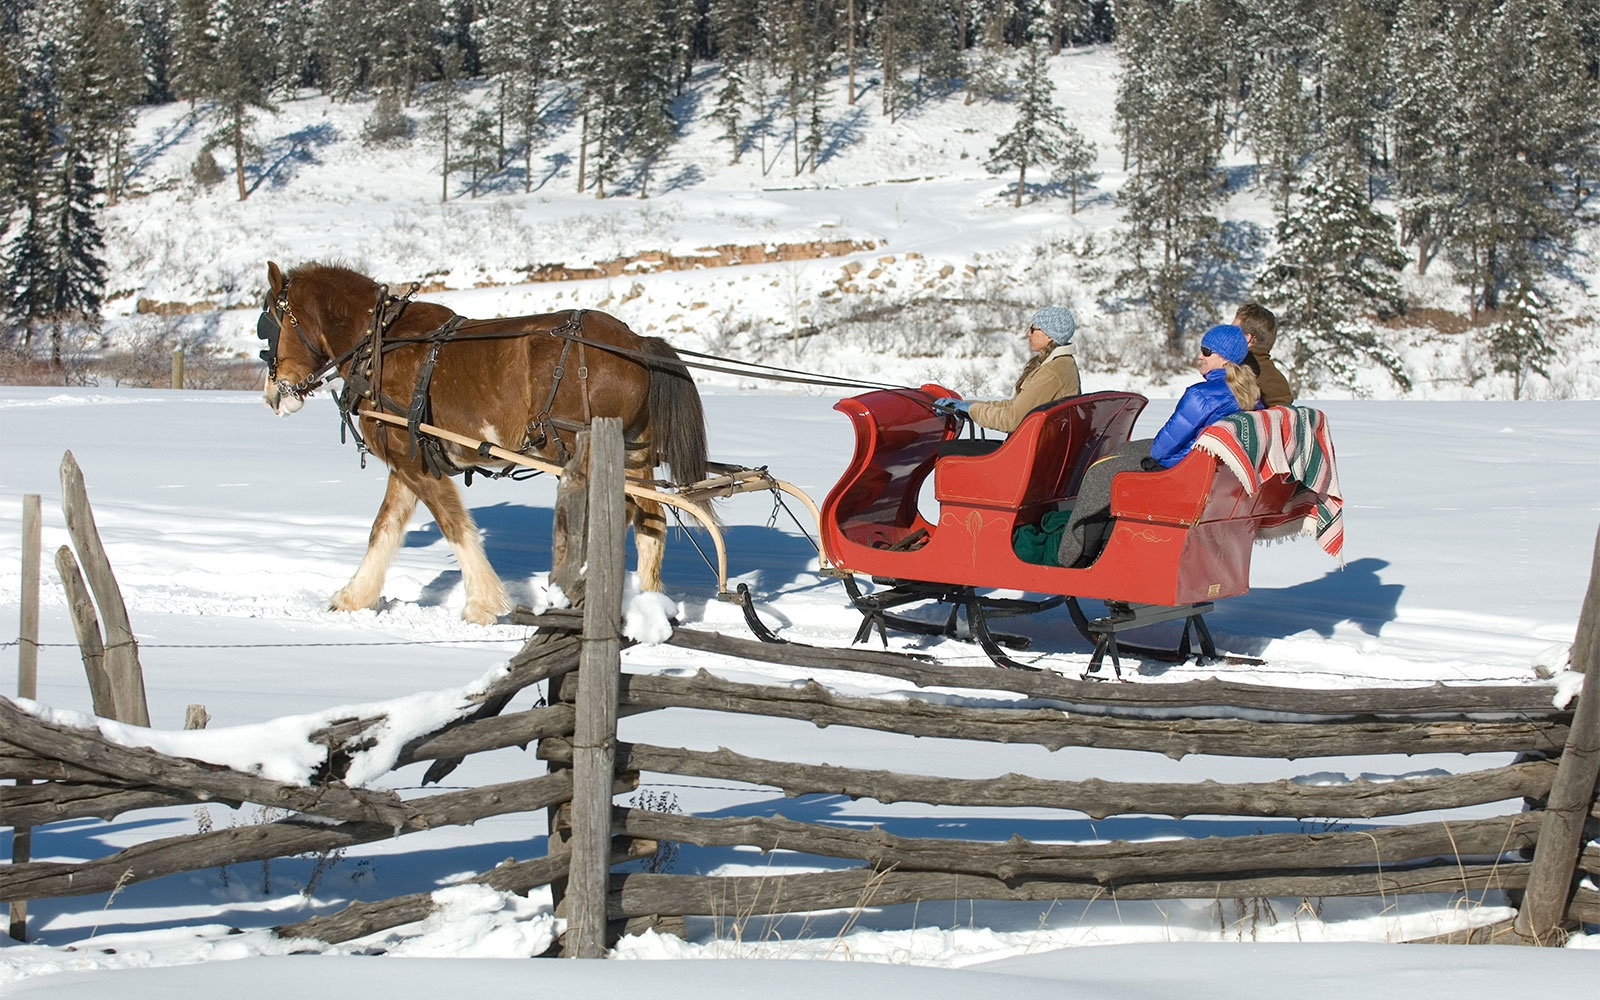 Christmas sleigh ride in Durango, Colorado